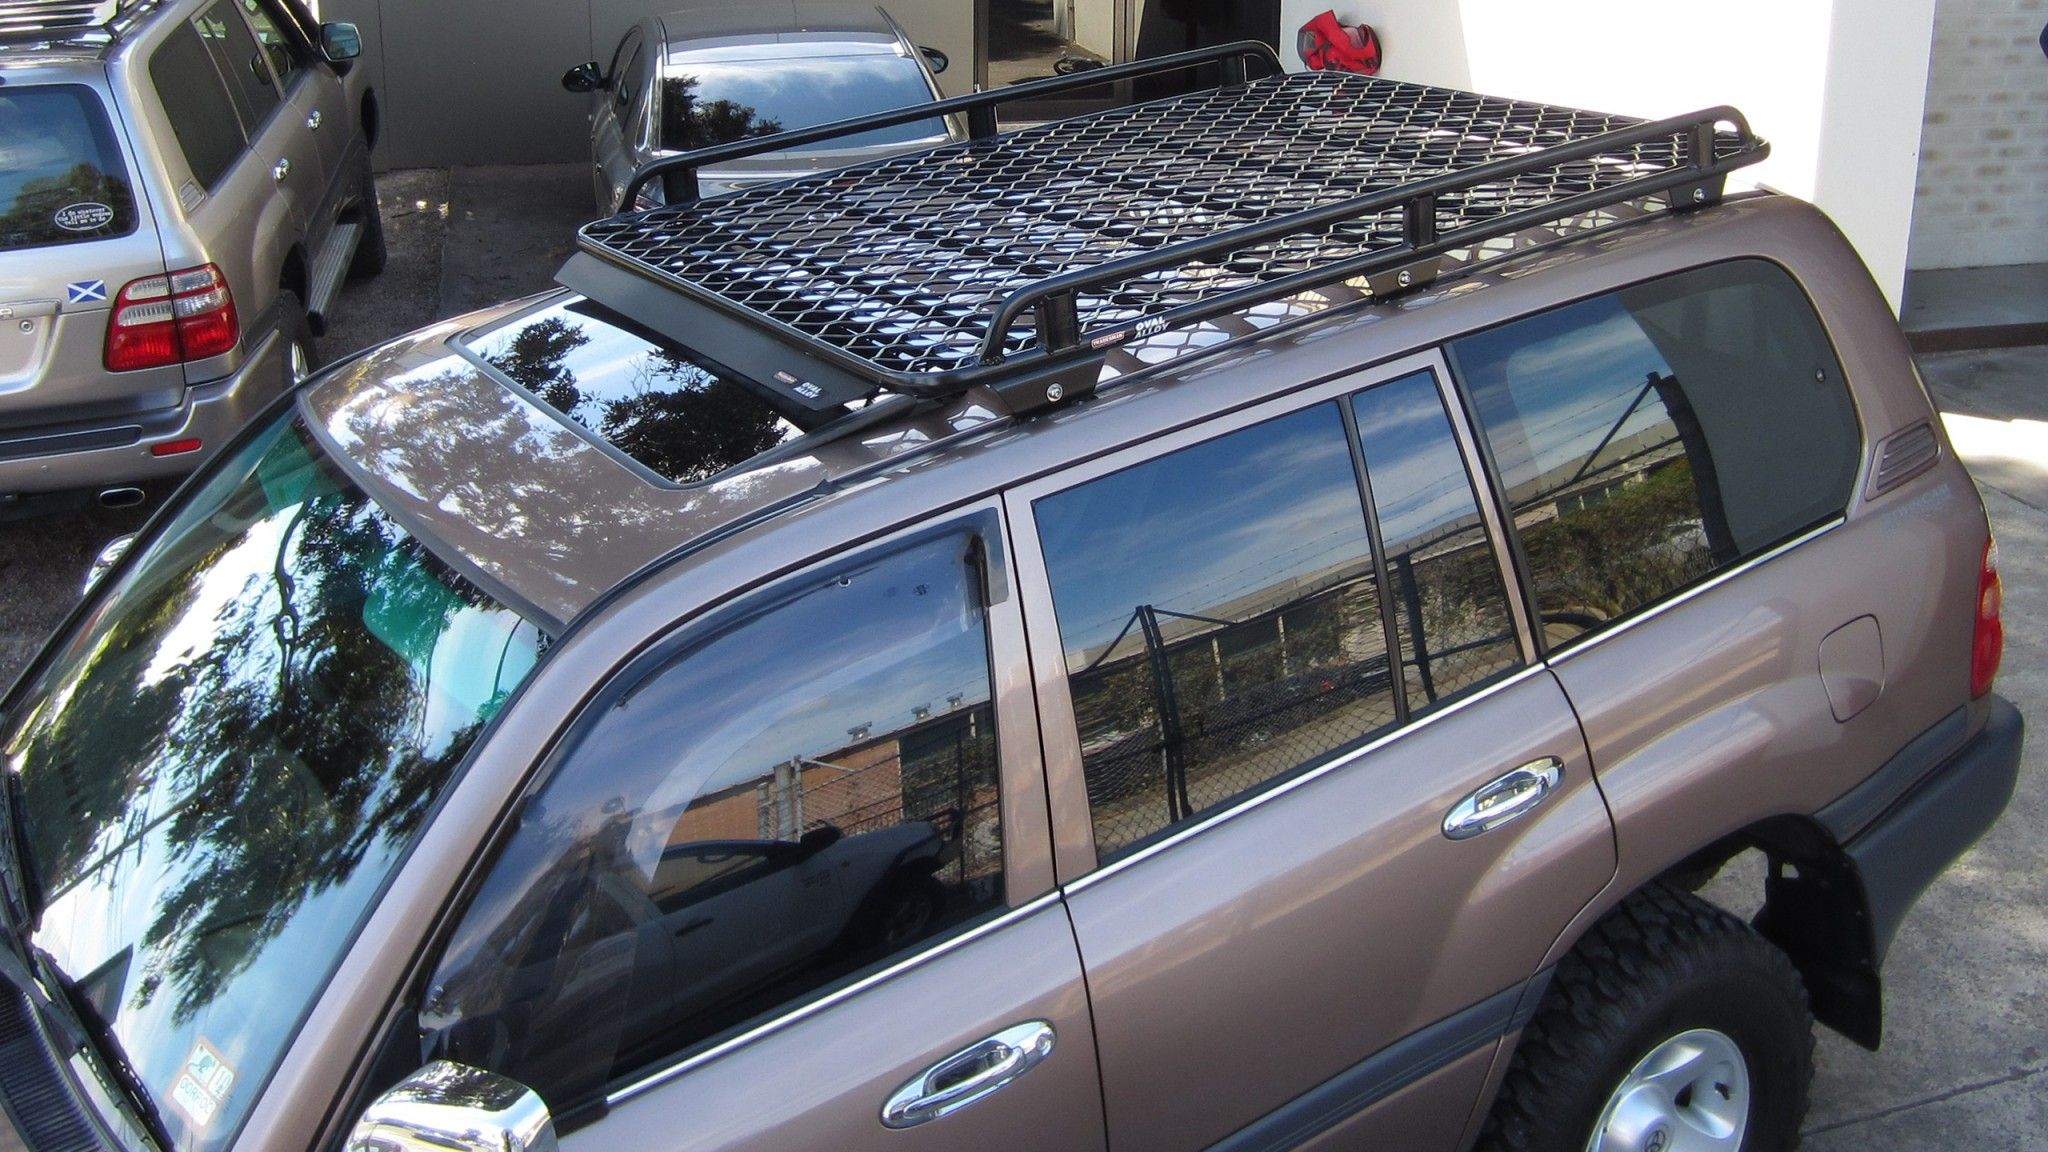 Toyota Landcruiser 100 Series Roof Racks Land Cruiser Toyota Land Cruiser 100 Landcruiser 100